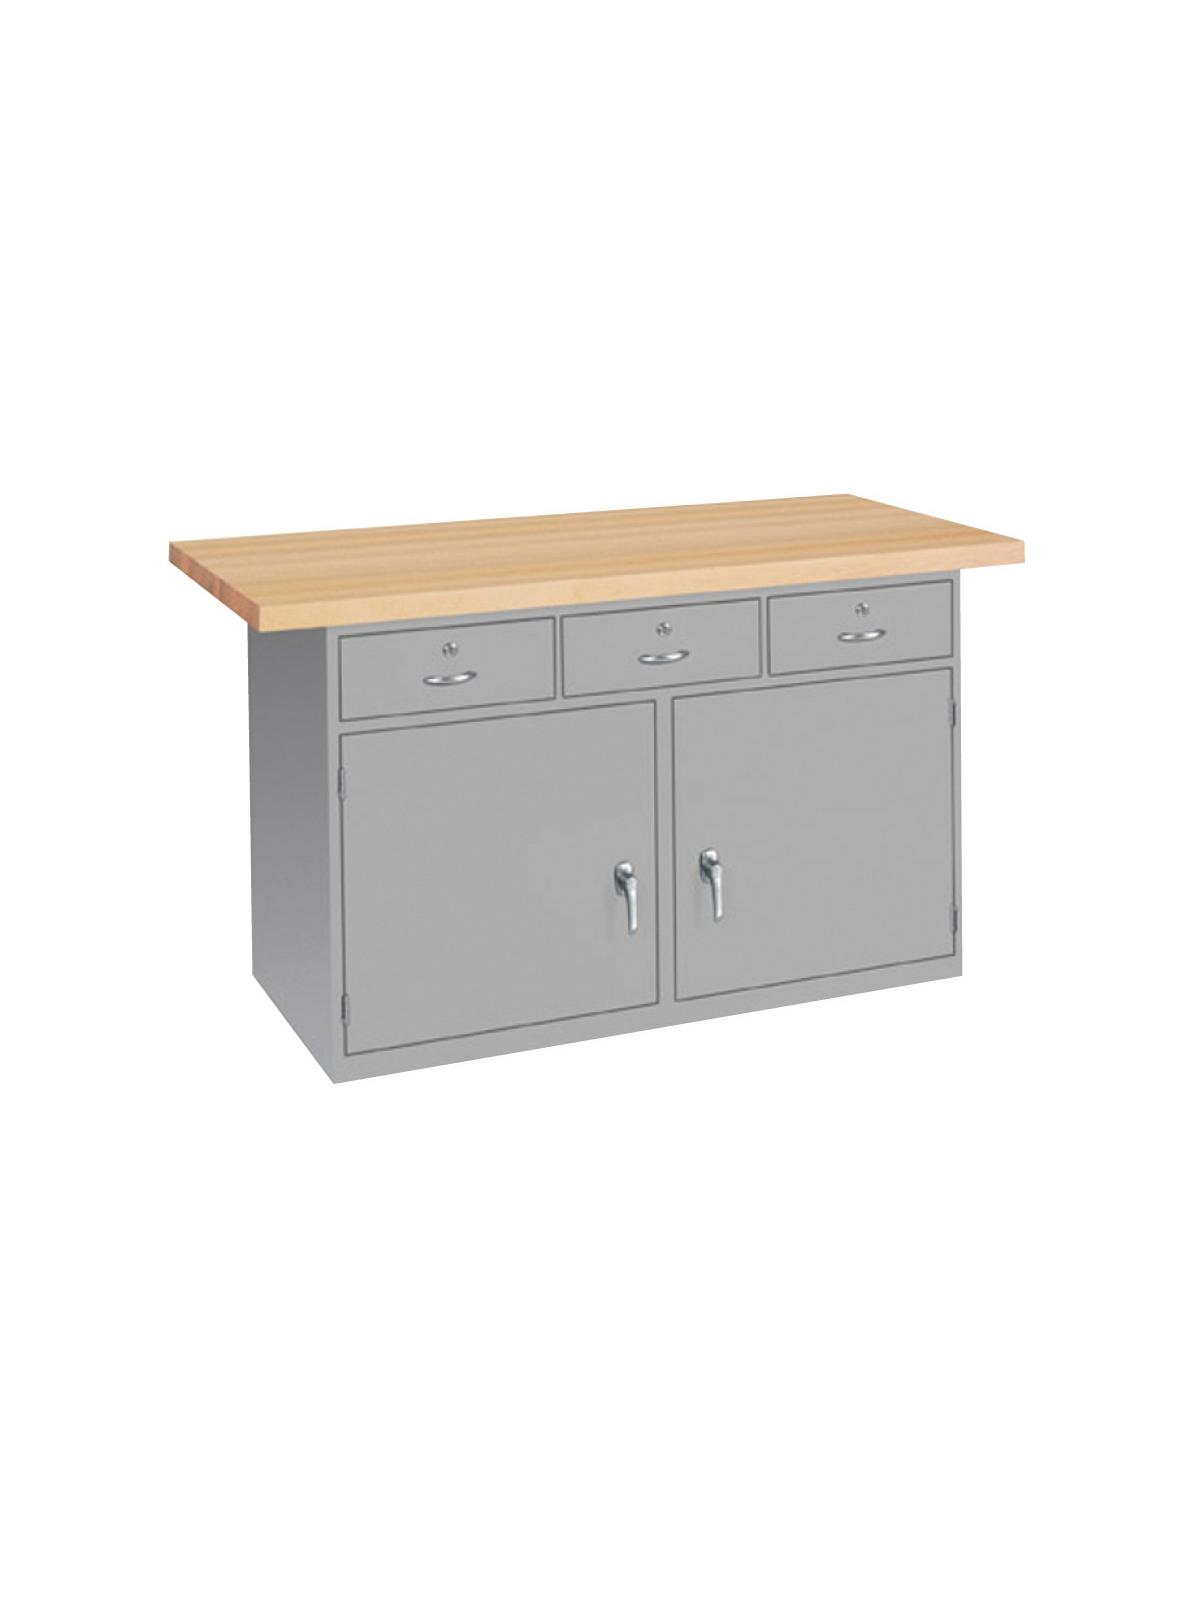 Cabinet Drawer Work Bench At Nationwide Industrial Supply Llc